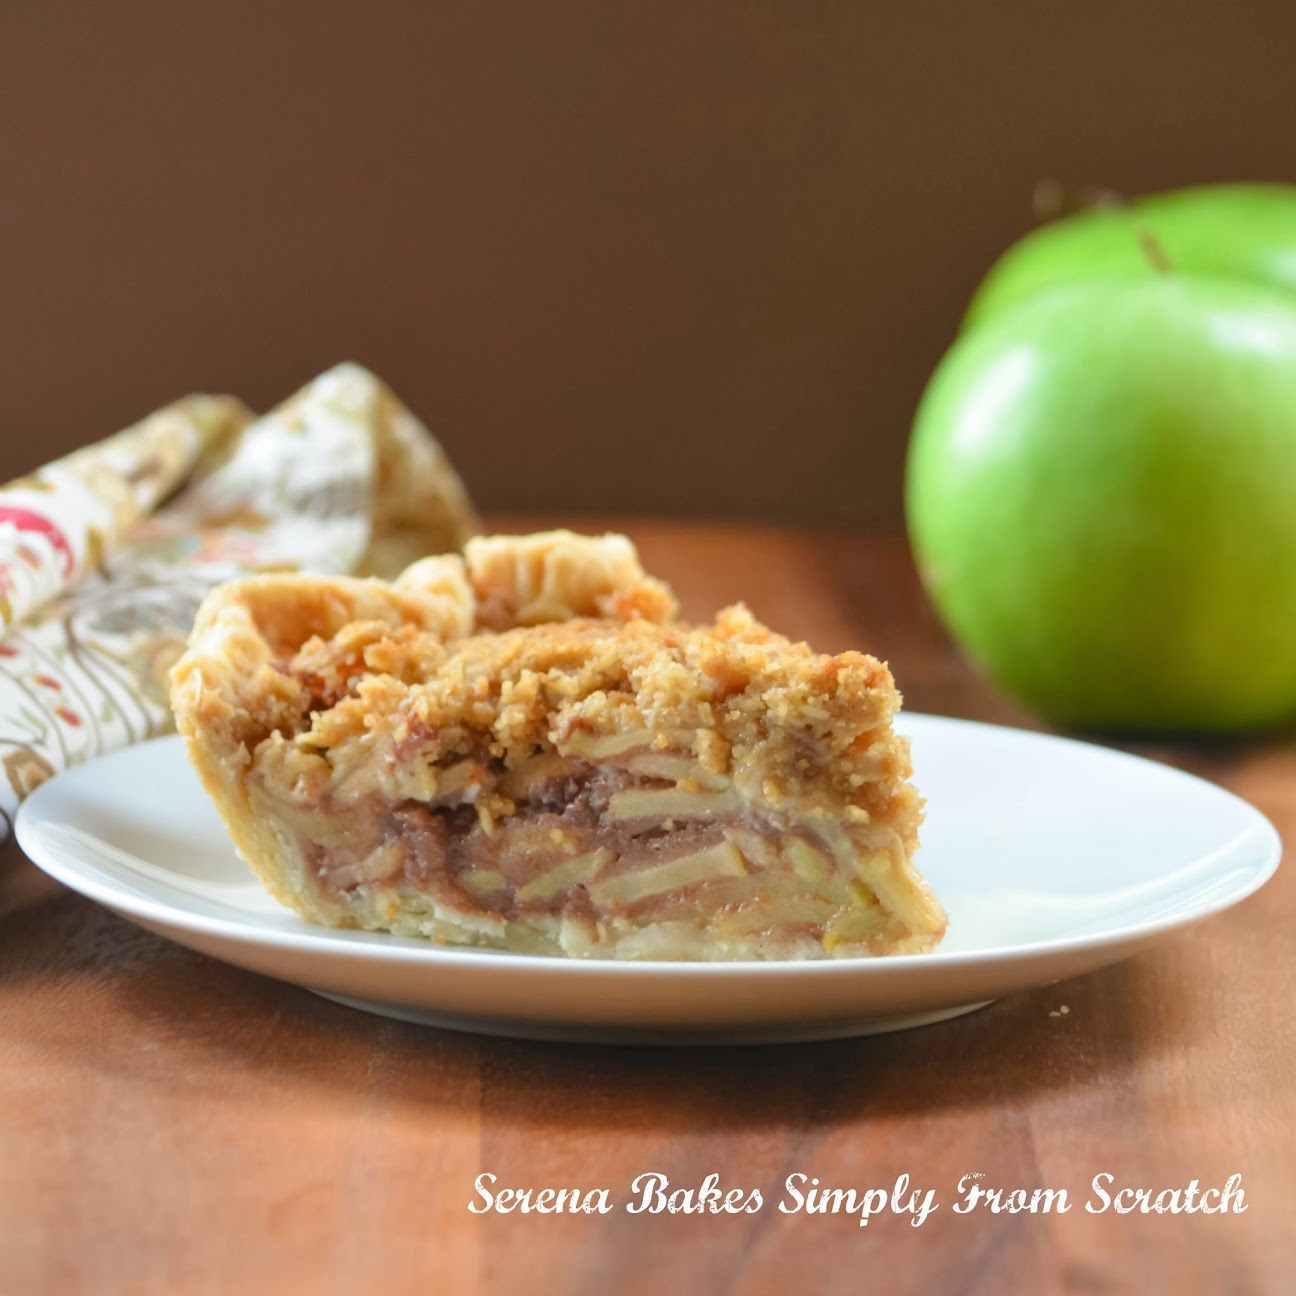 Caramely-Apple-Pie-With-Crunch-Topping.jpg